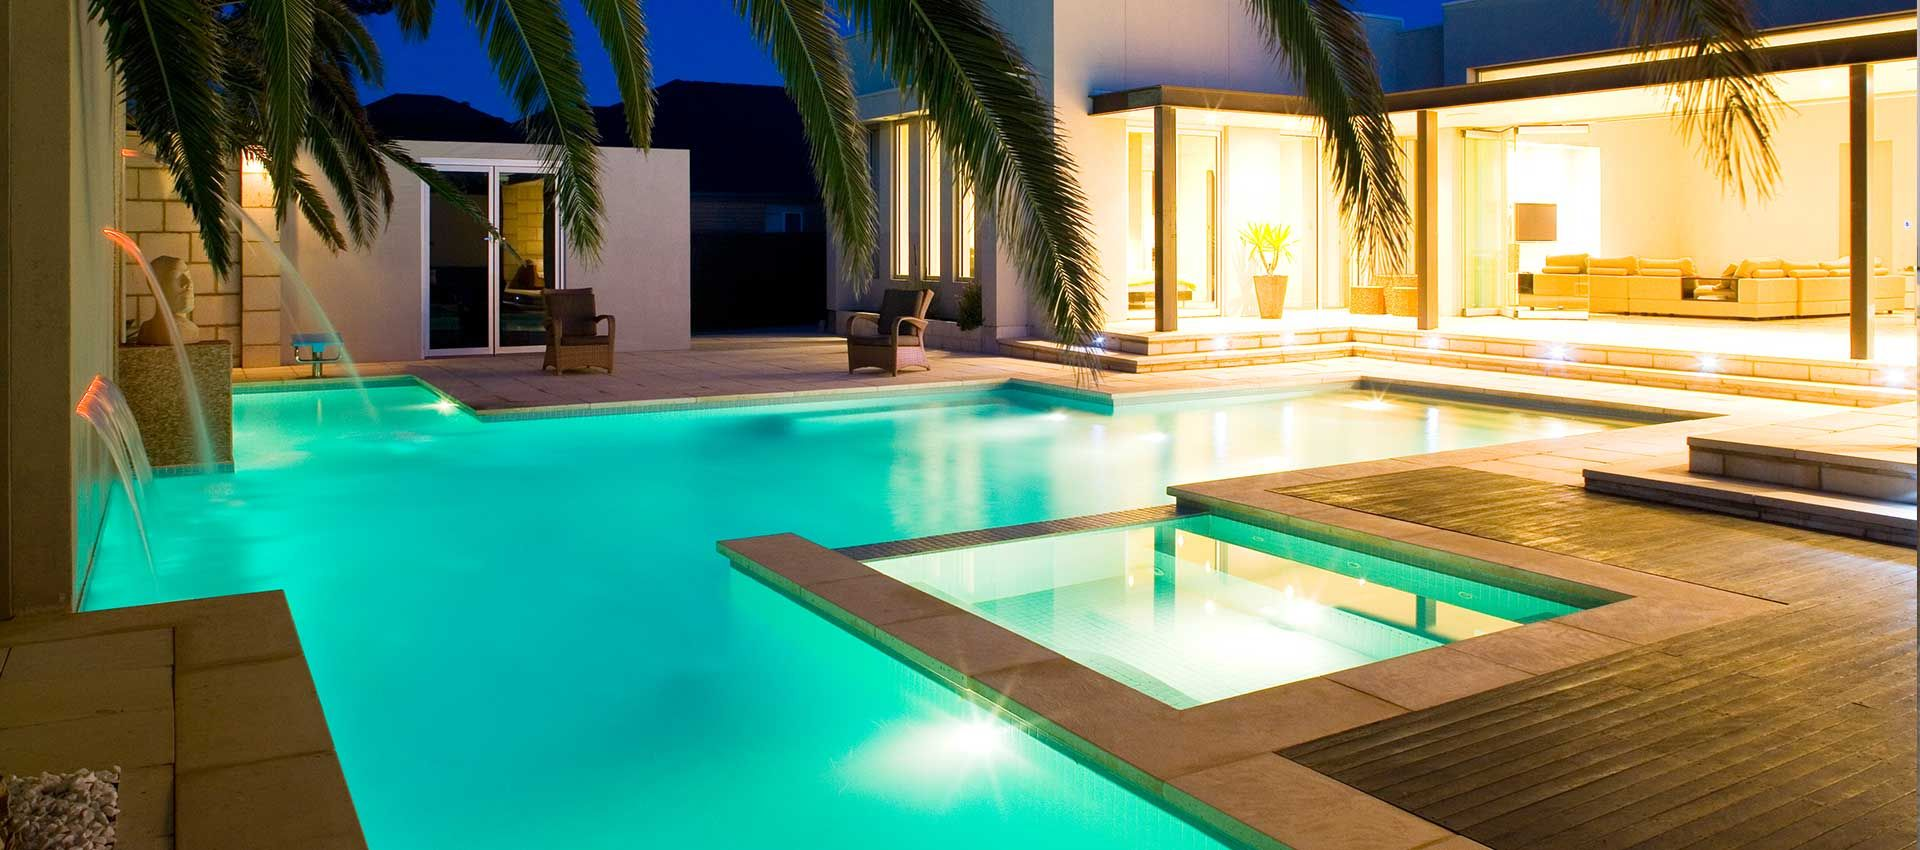 Great Square Pool Designs Pictures >> Square Swimming Pool Designs ...